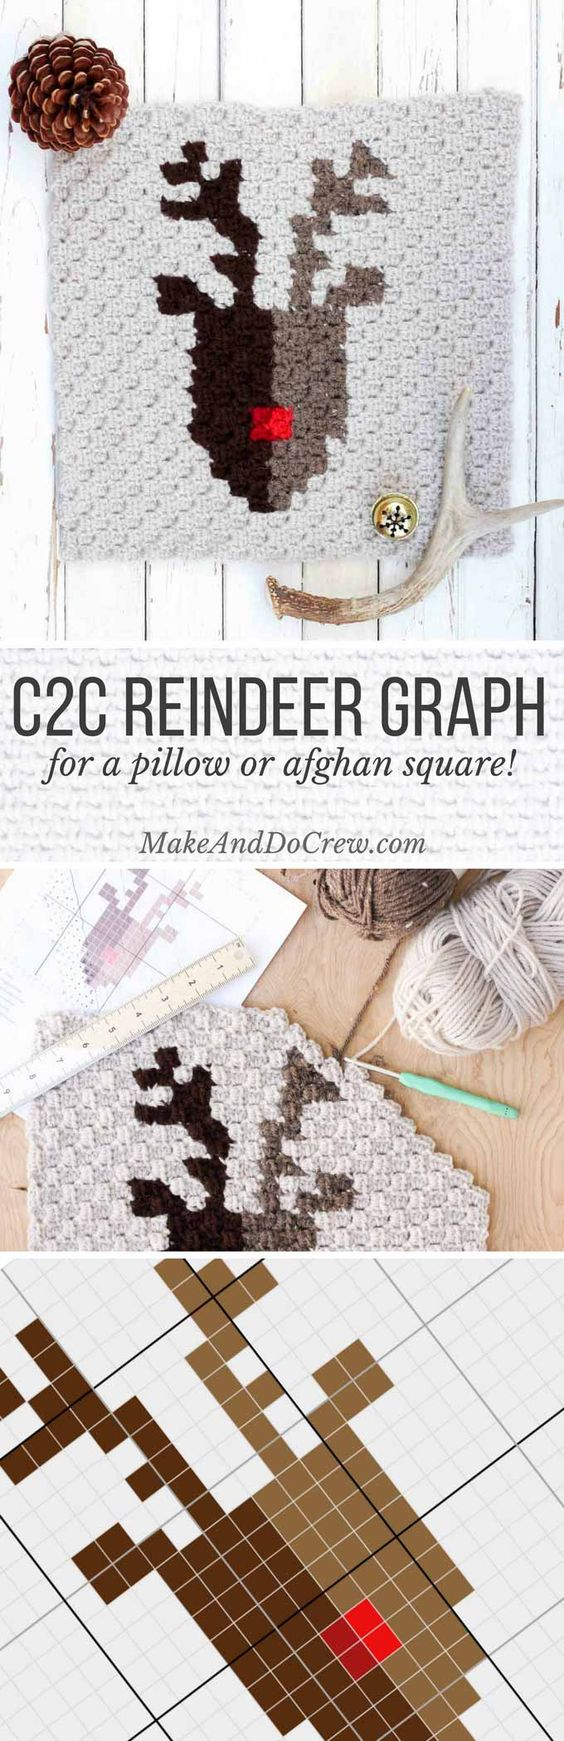 This free pattern for a corner to corner crochet reindeer graph is perfect as part of a Christmas afghan, but also works on its own as a festive pillow square. Create a graphgan that your family can enjoy for many Christmases to come!: